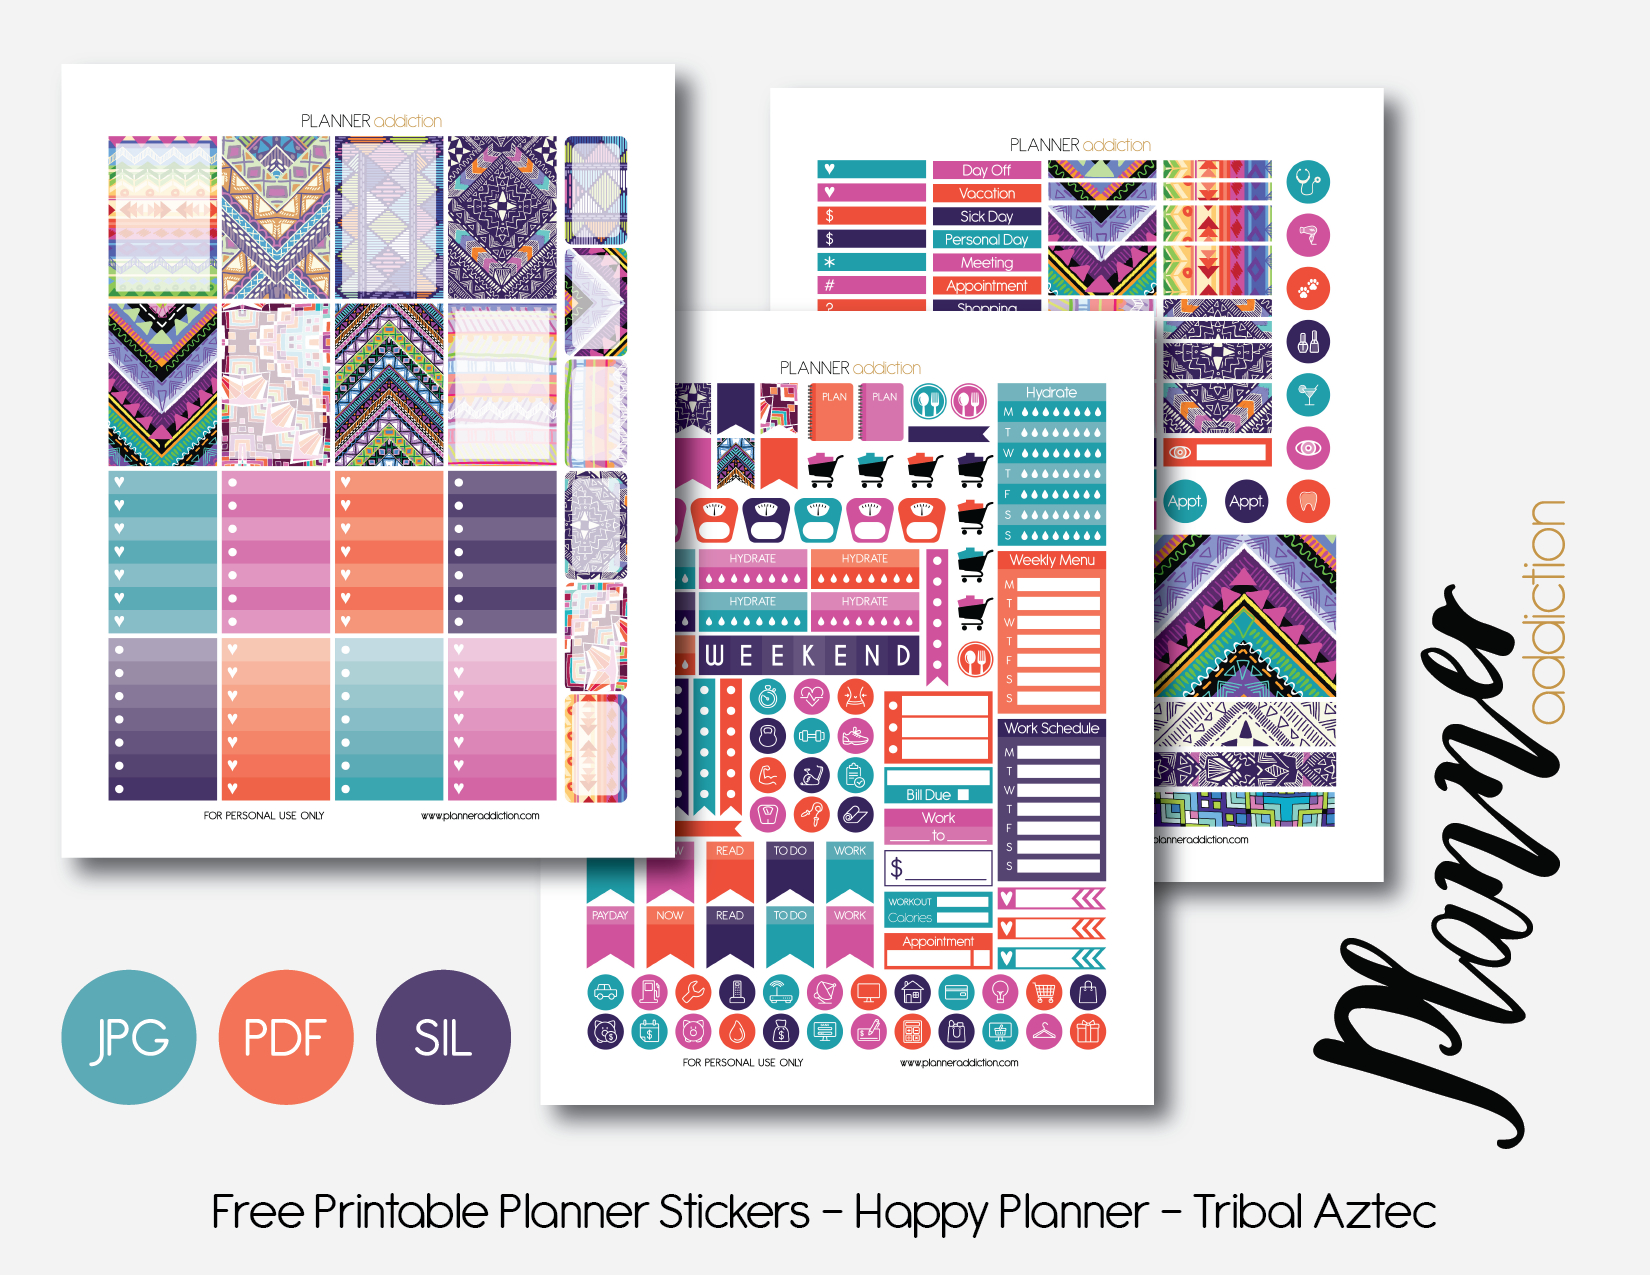 Free Printable Planner Stickers – Planner Addiction - Free Printable Planner Stickers Pdf